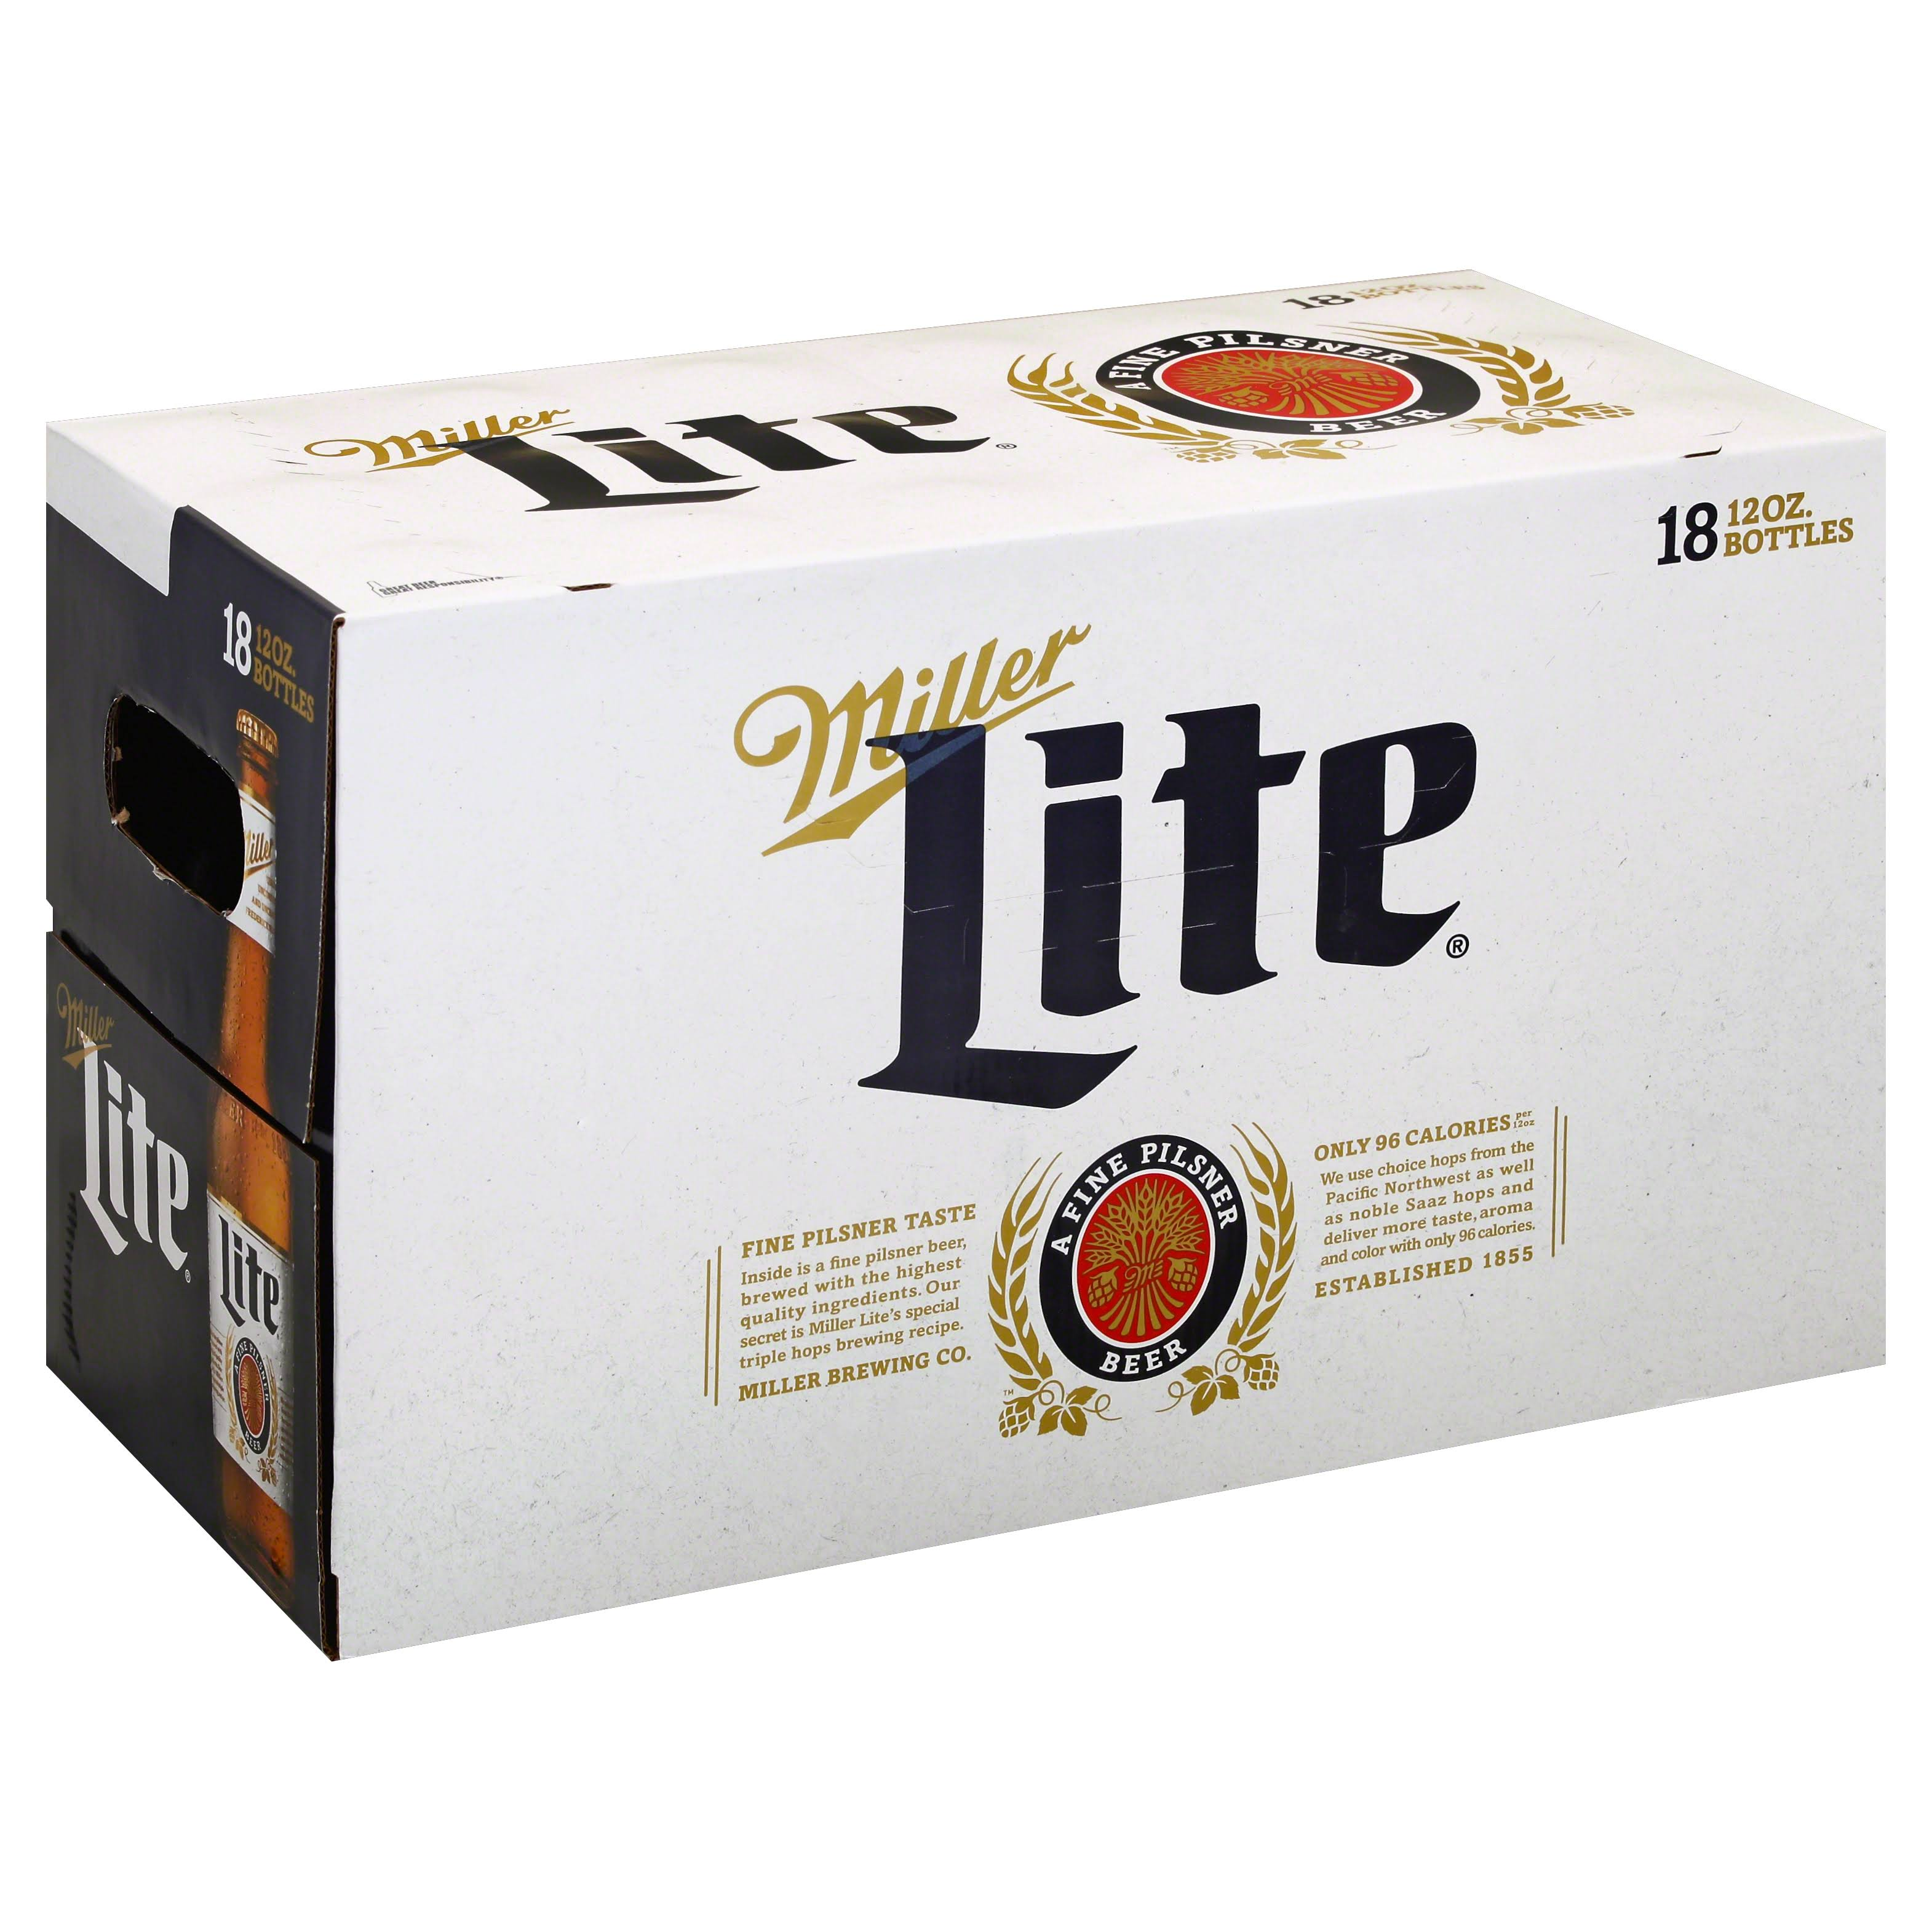 Miller Lite Beer - 18 Bottles